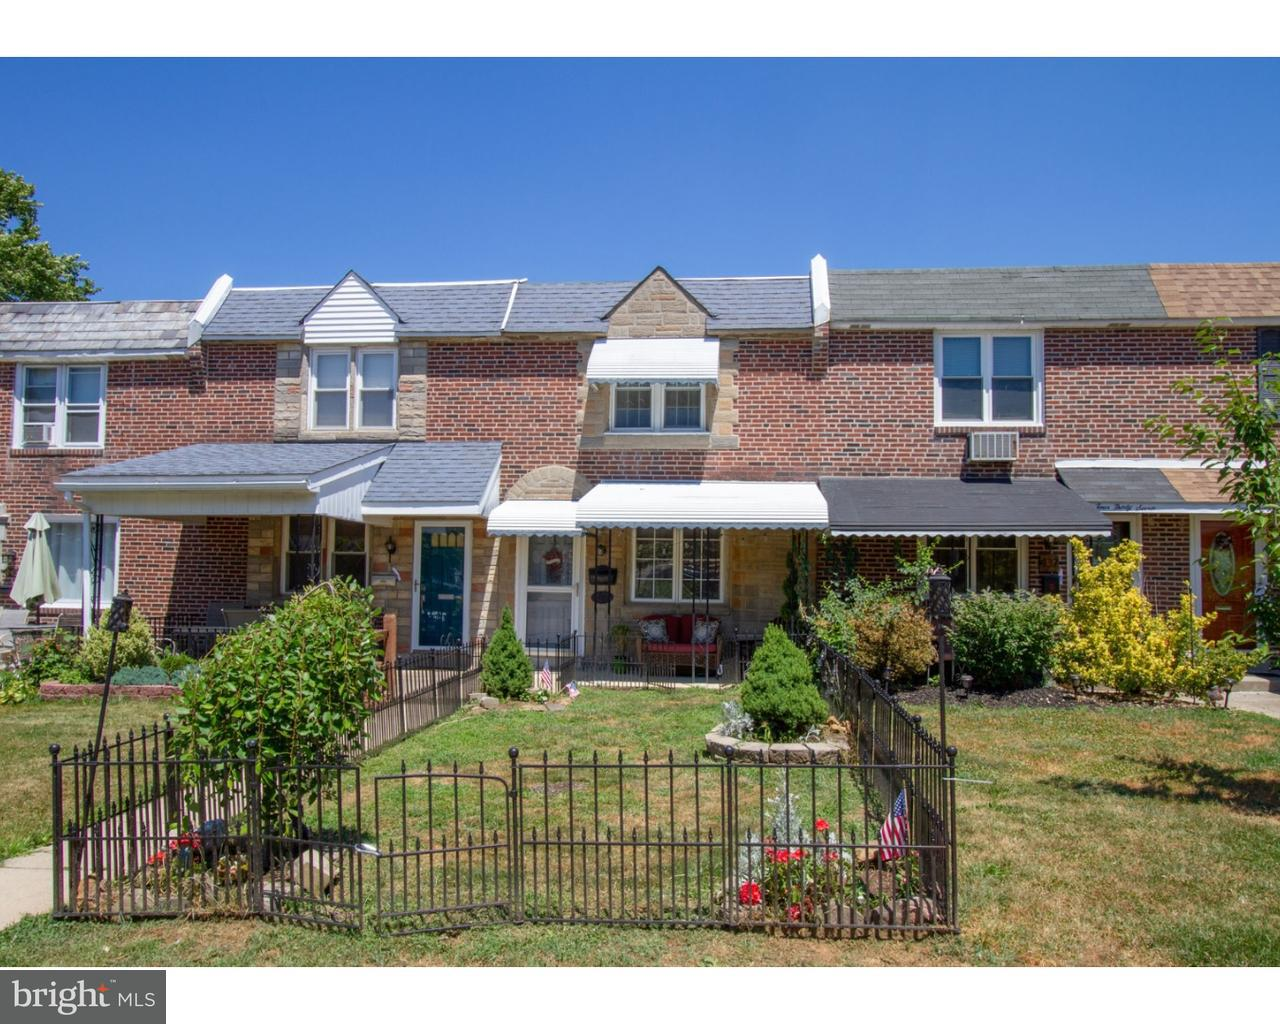 Single Family Home for Sale at 439 SEVEN OAKS Drive Clifton Heights, Pennsylvania 19018 United States